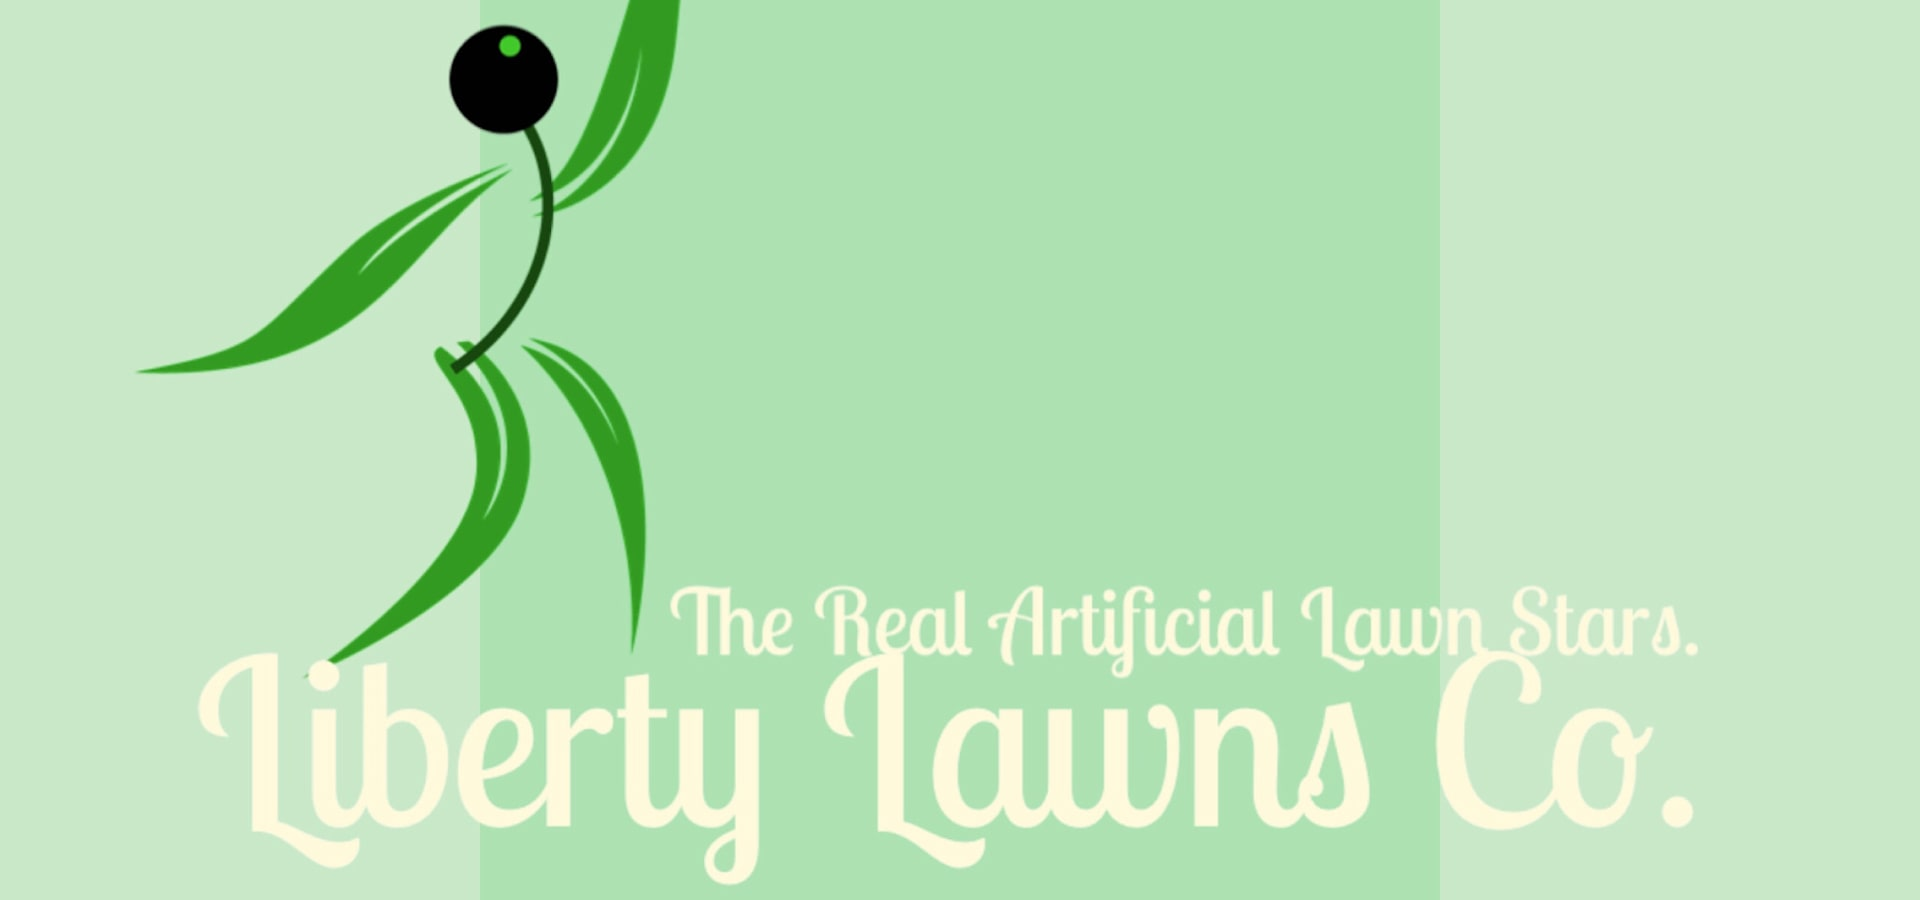 Liberty Lawns Co… The Real Artificial Lawn Stars